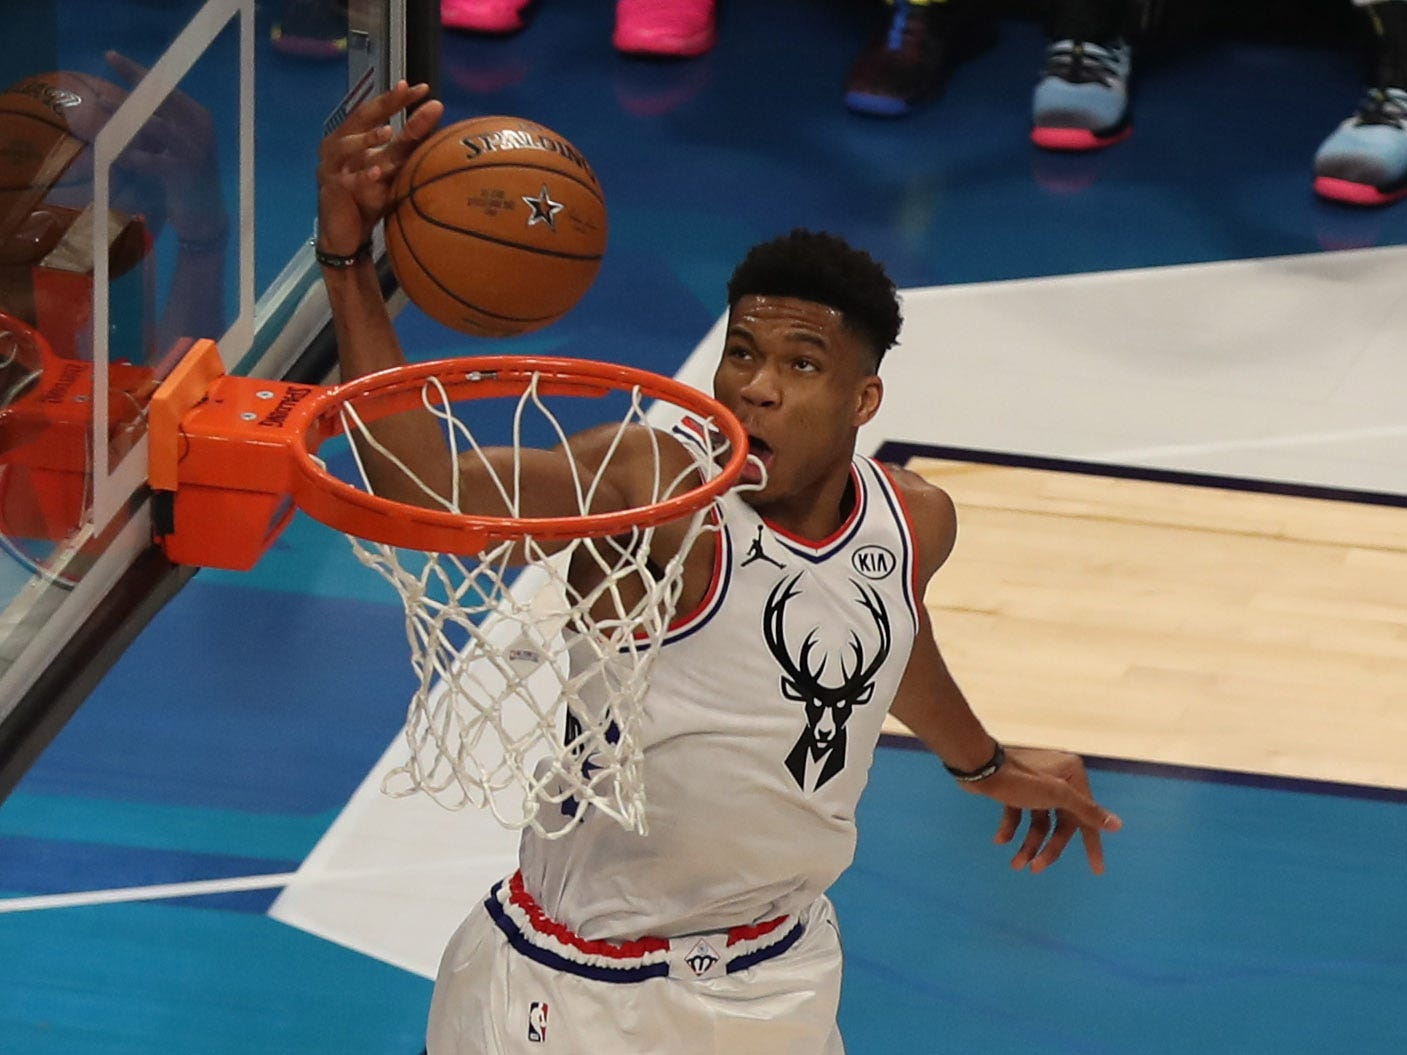 Giannis Antetokounmpo of the Milwaukee Bucks approaches the rim for one of his many dunks on Sunday night.